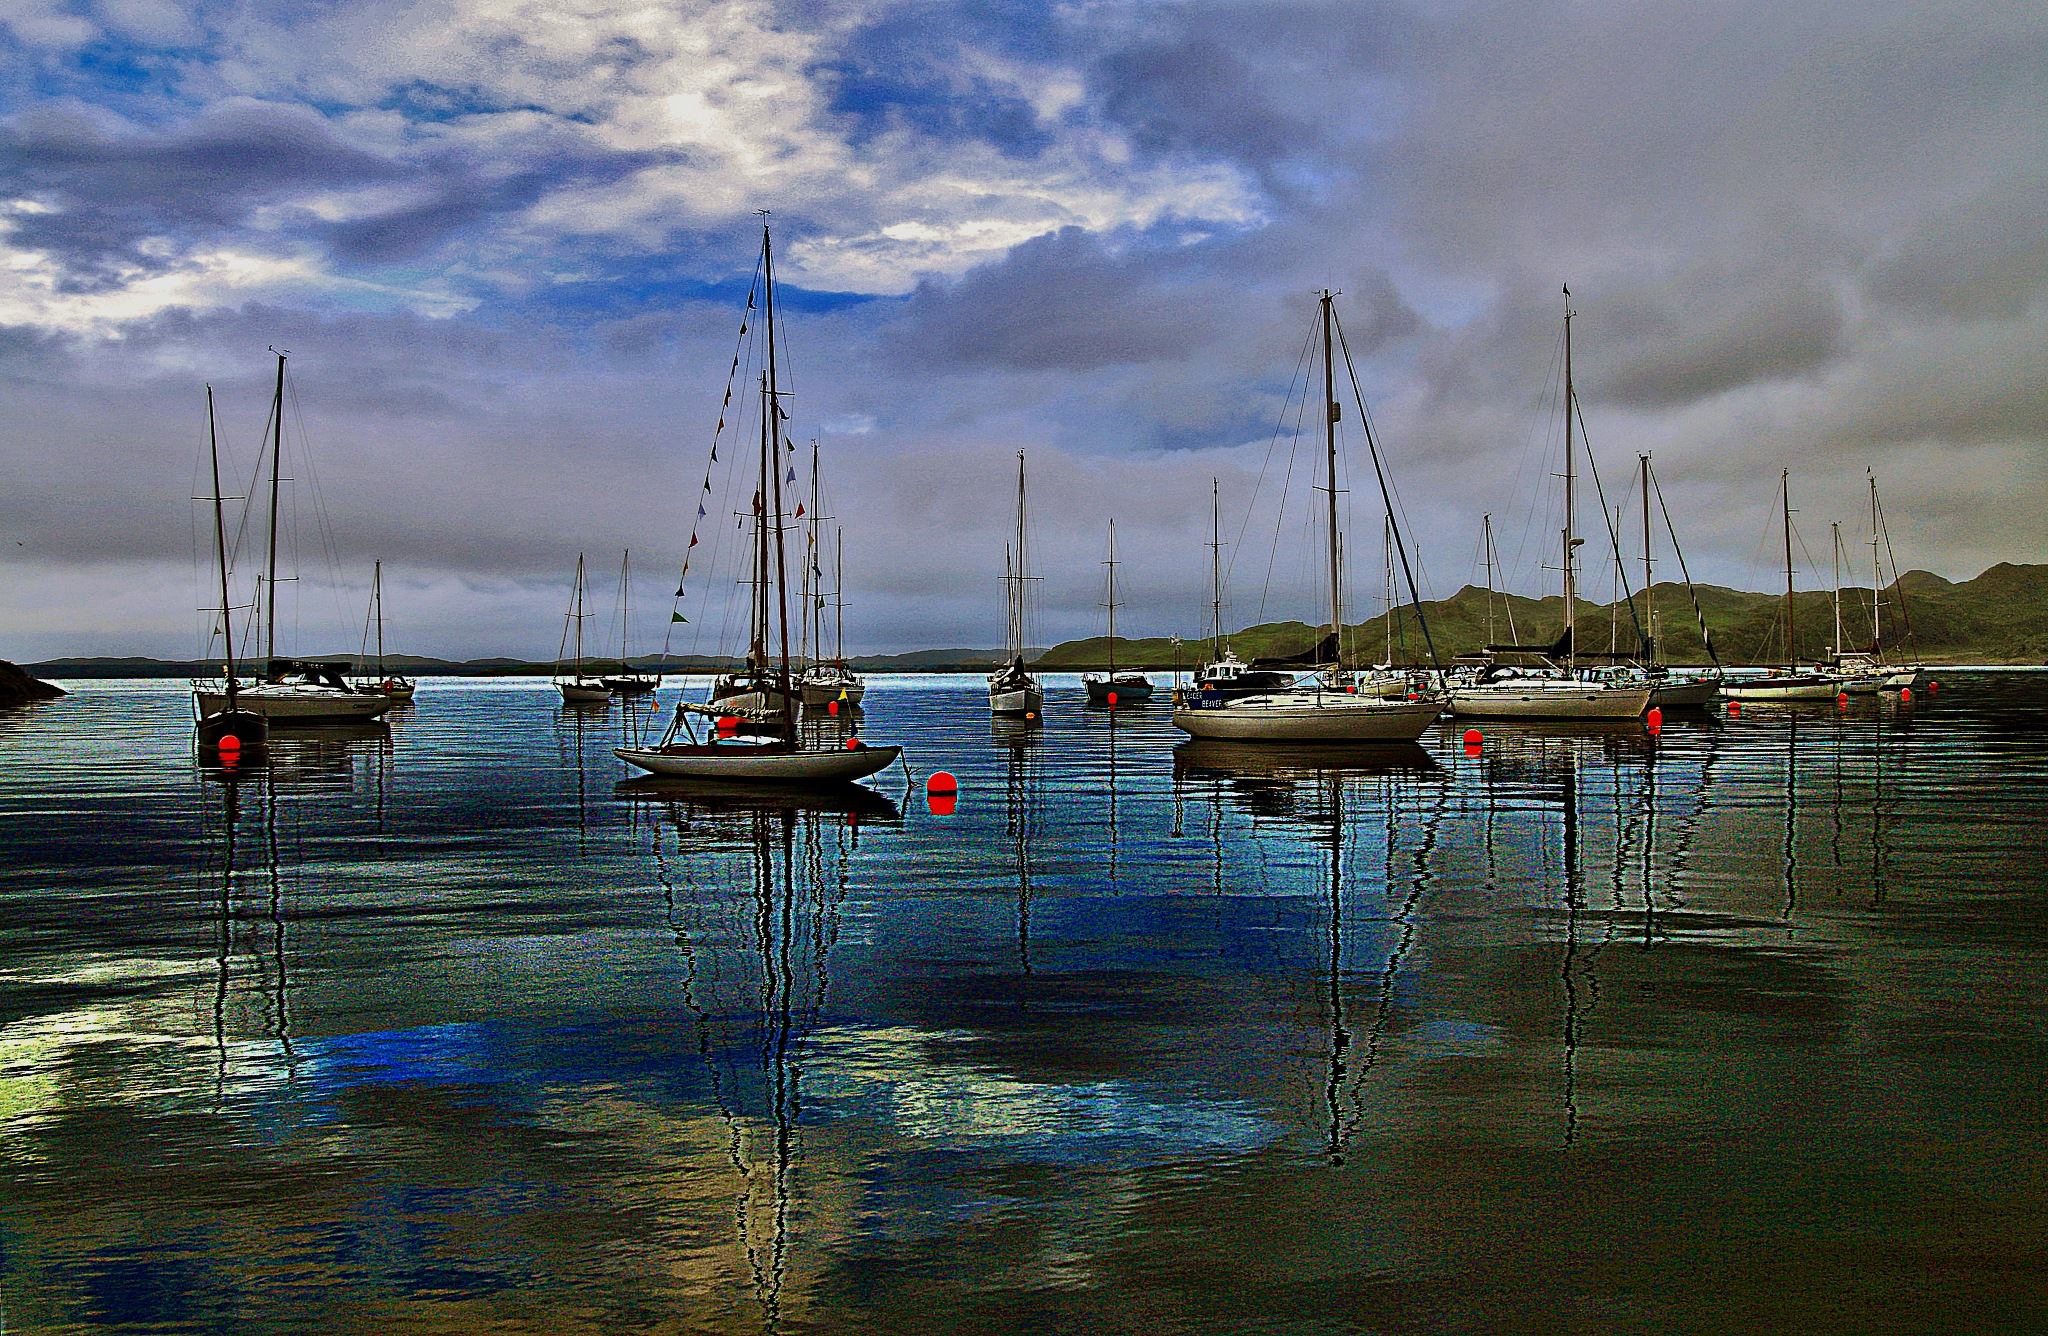 Crinnen Yachts by PeterMChambers